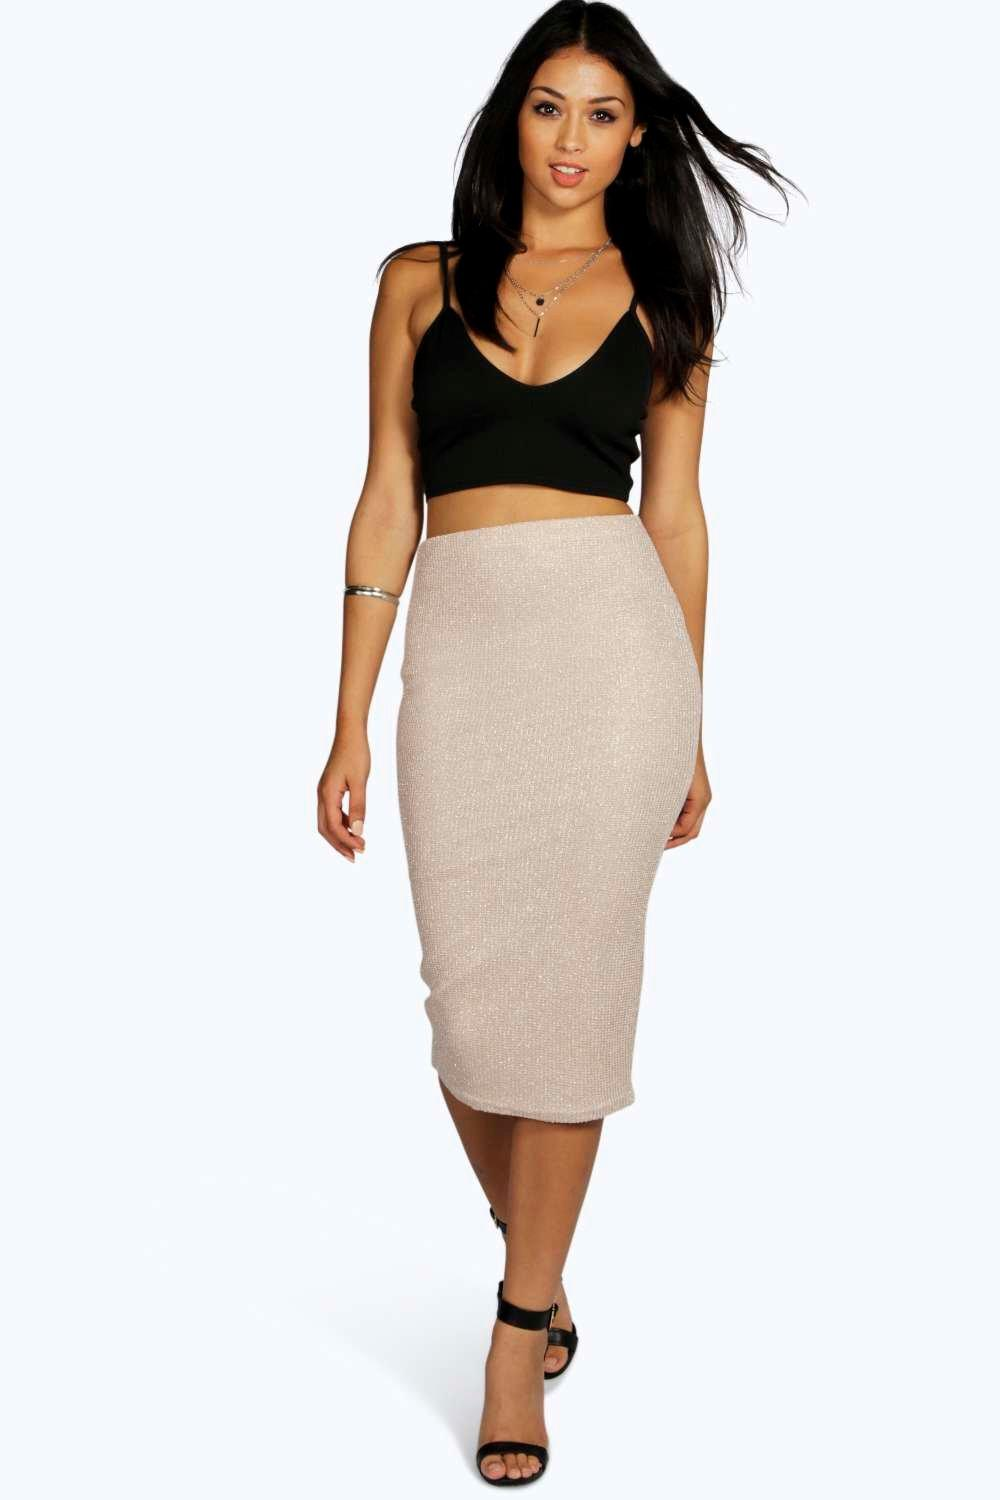 India Metallic Knit Midi Skirt at boohoo.com